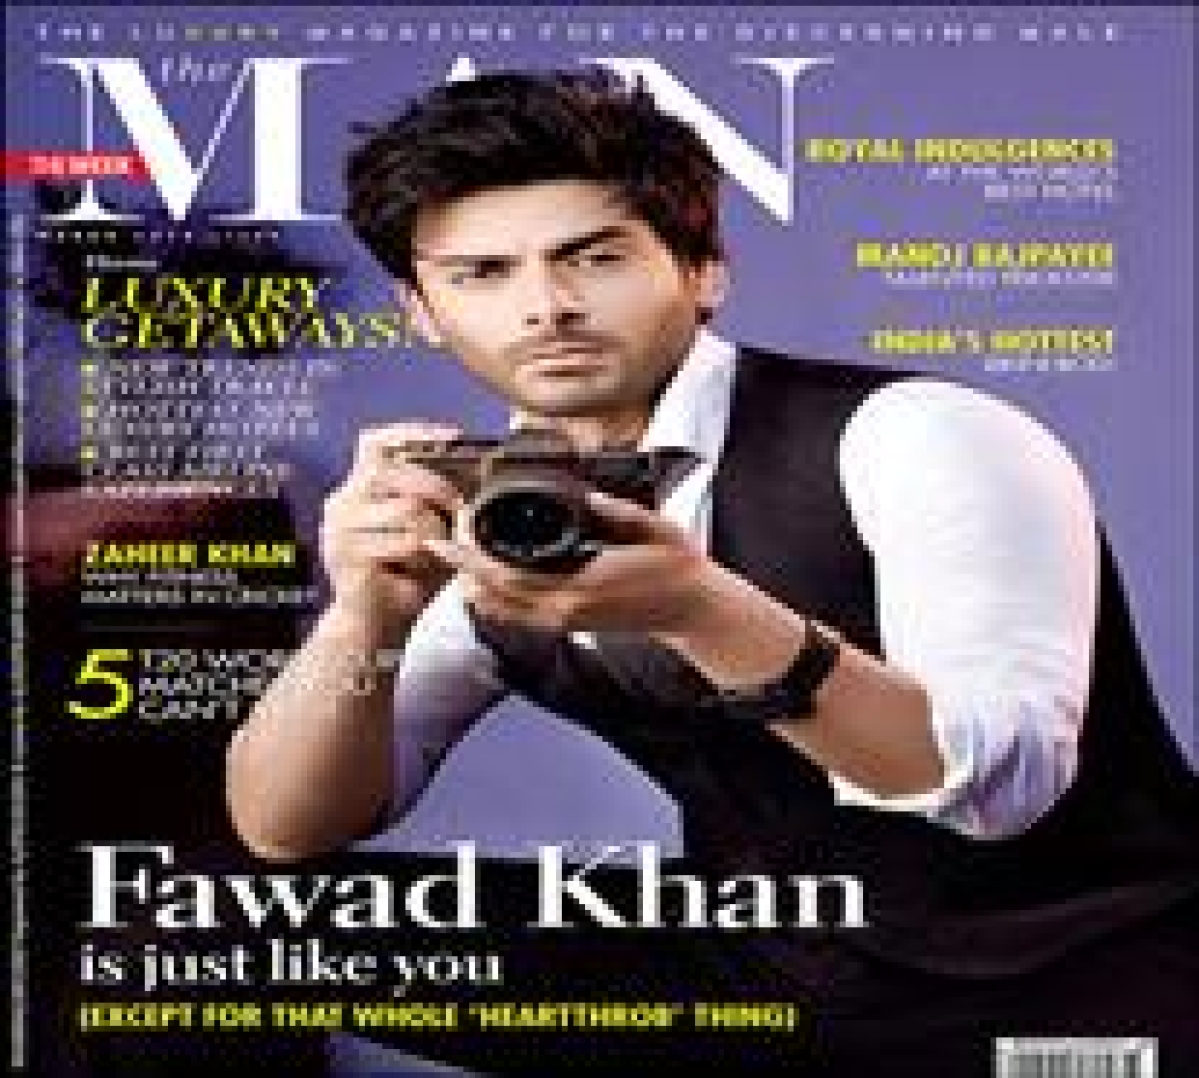 Fawad Khan on the cover of 'The Man'